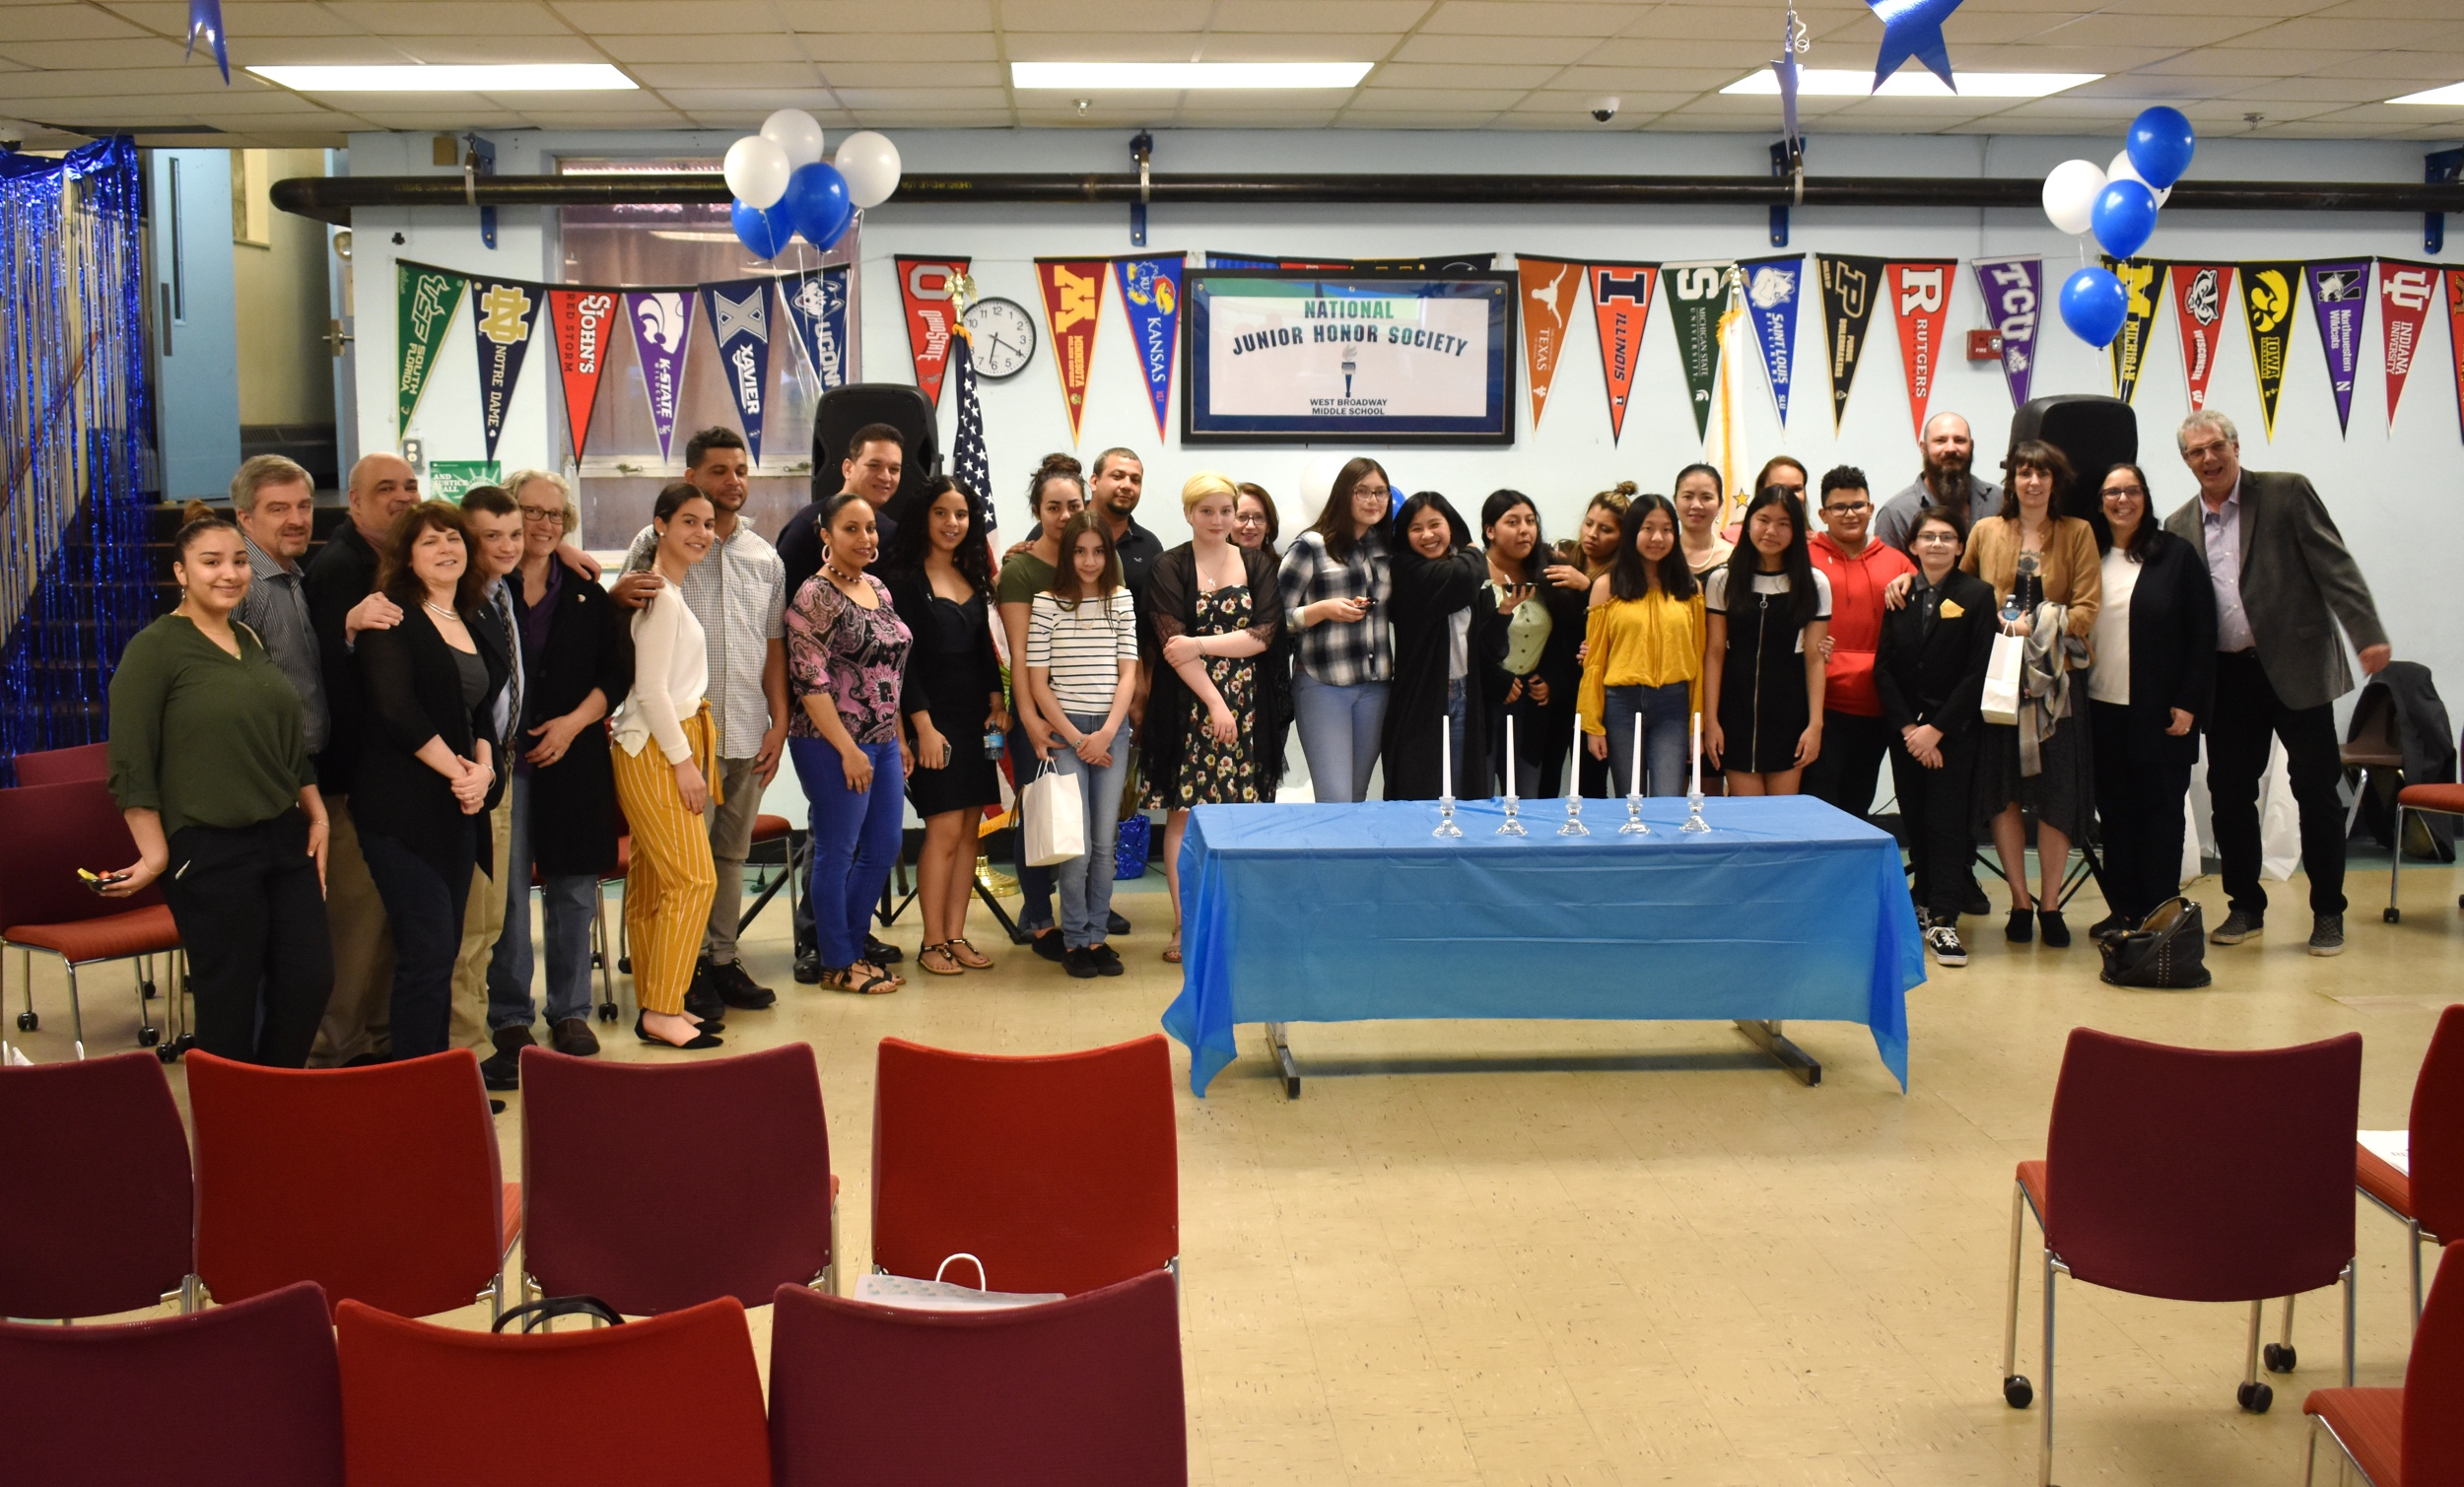 Proud students and families at West Broadway Middle School's first NJHS Induction Ceremony